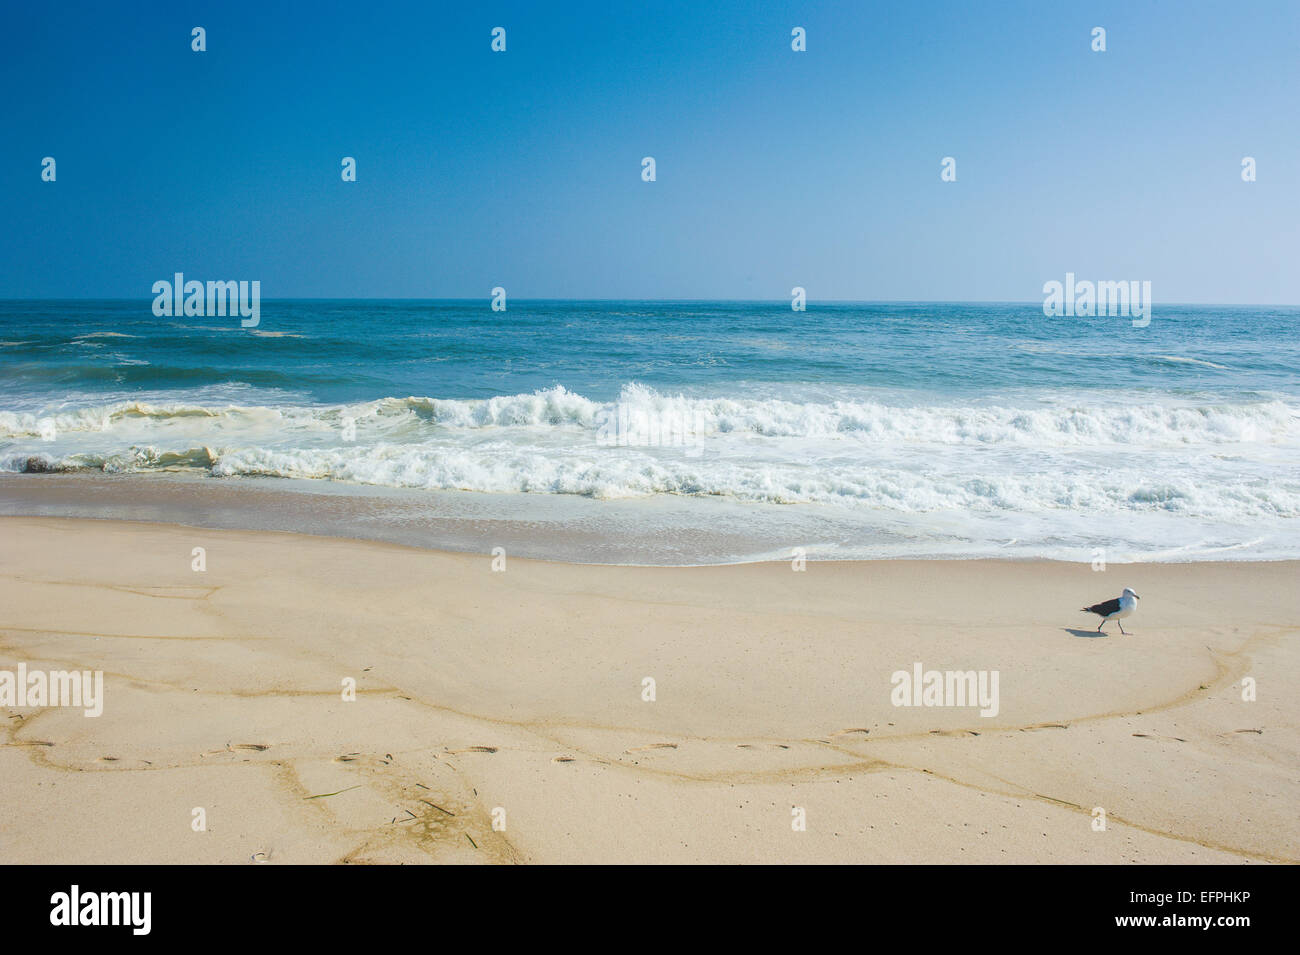 Long sandy beach in the Hamptons, Long Island, New York State, United States of America, North America - Stock Image